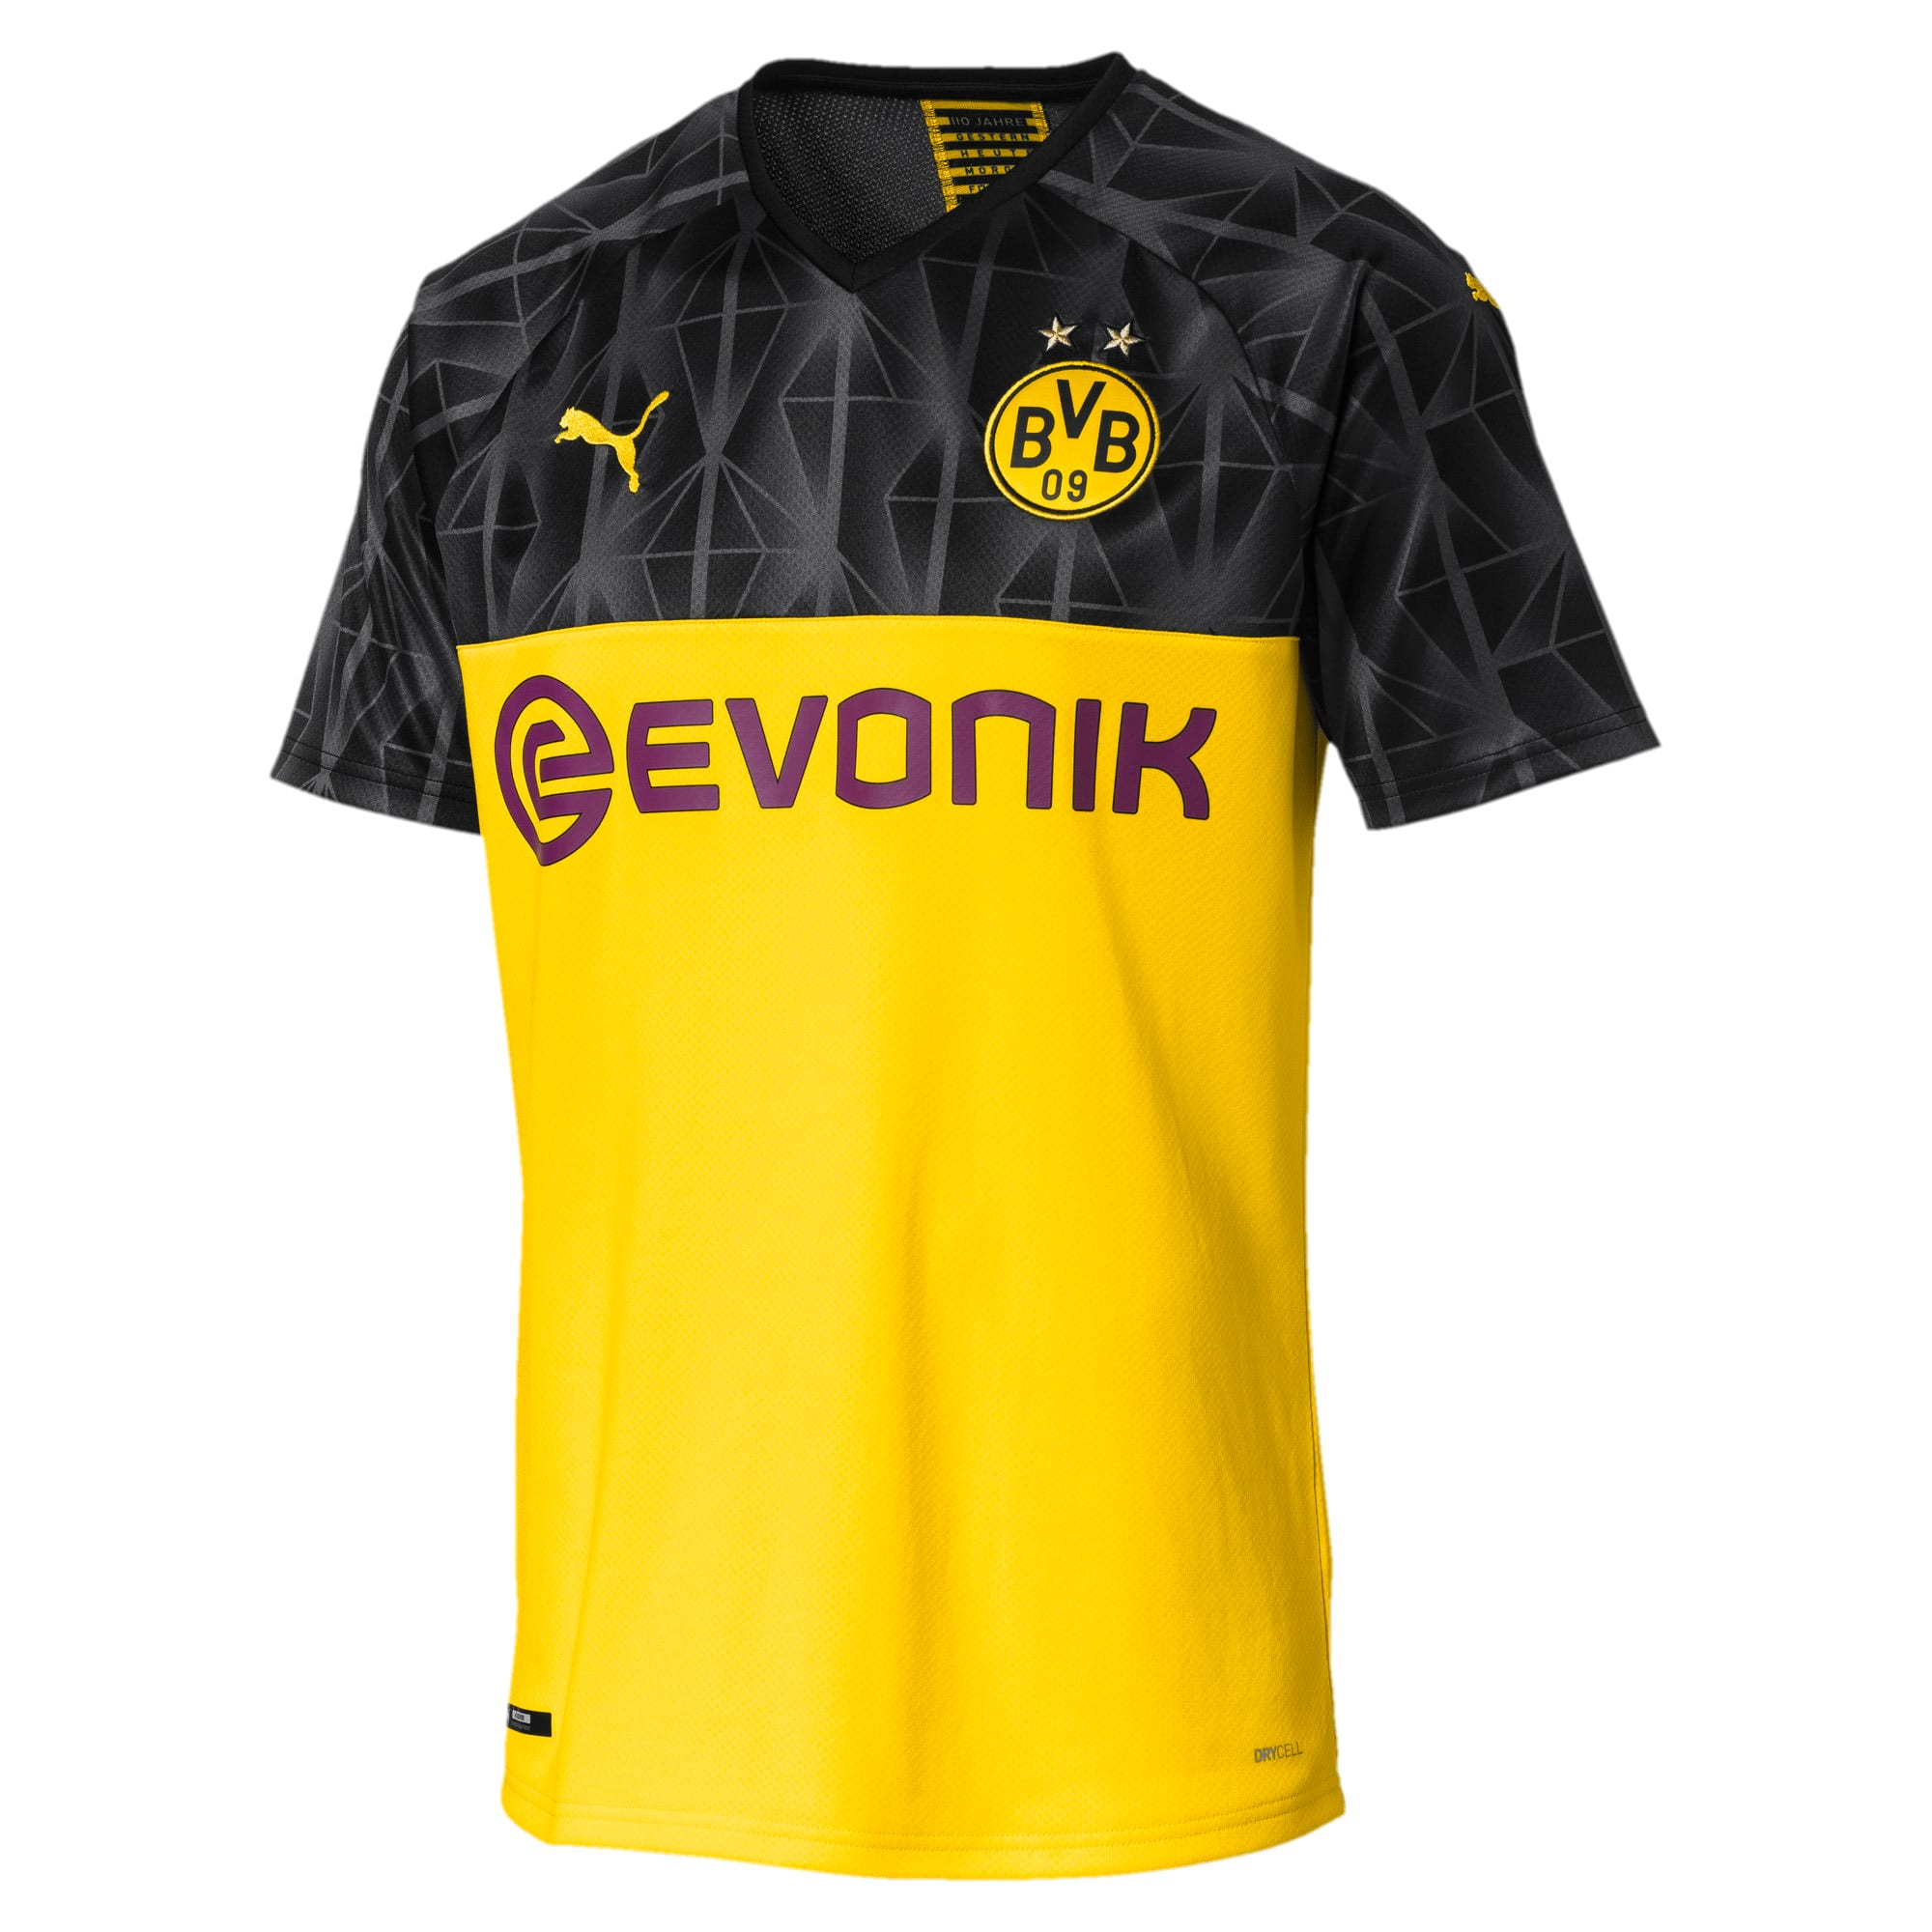 Thumbnail 1 of BVB Herren Replica Cup Trikot, Cyber Yellow-Puma Black, medium